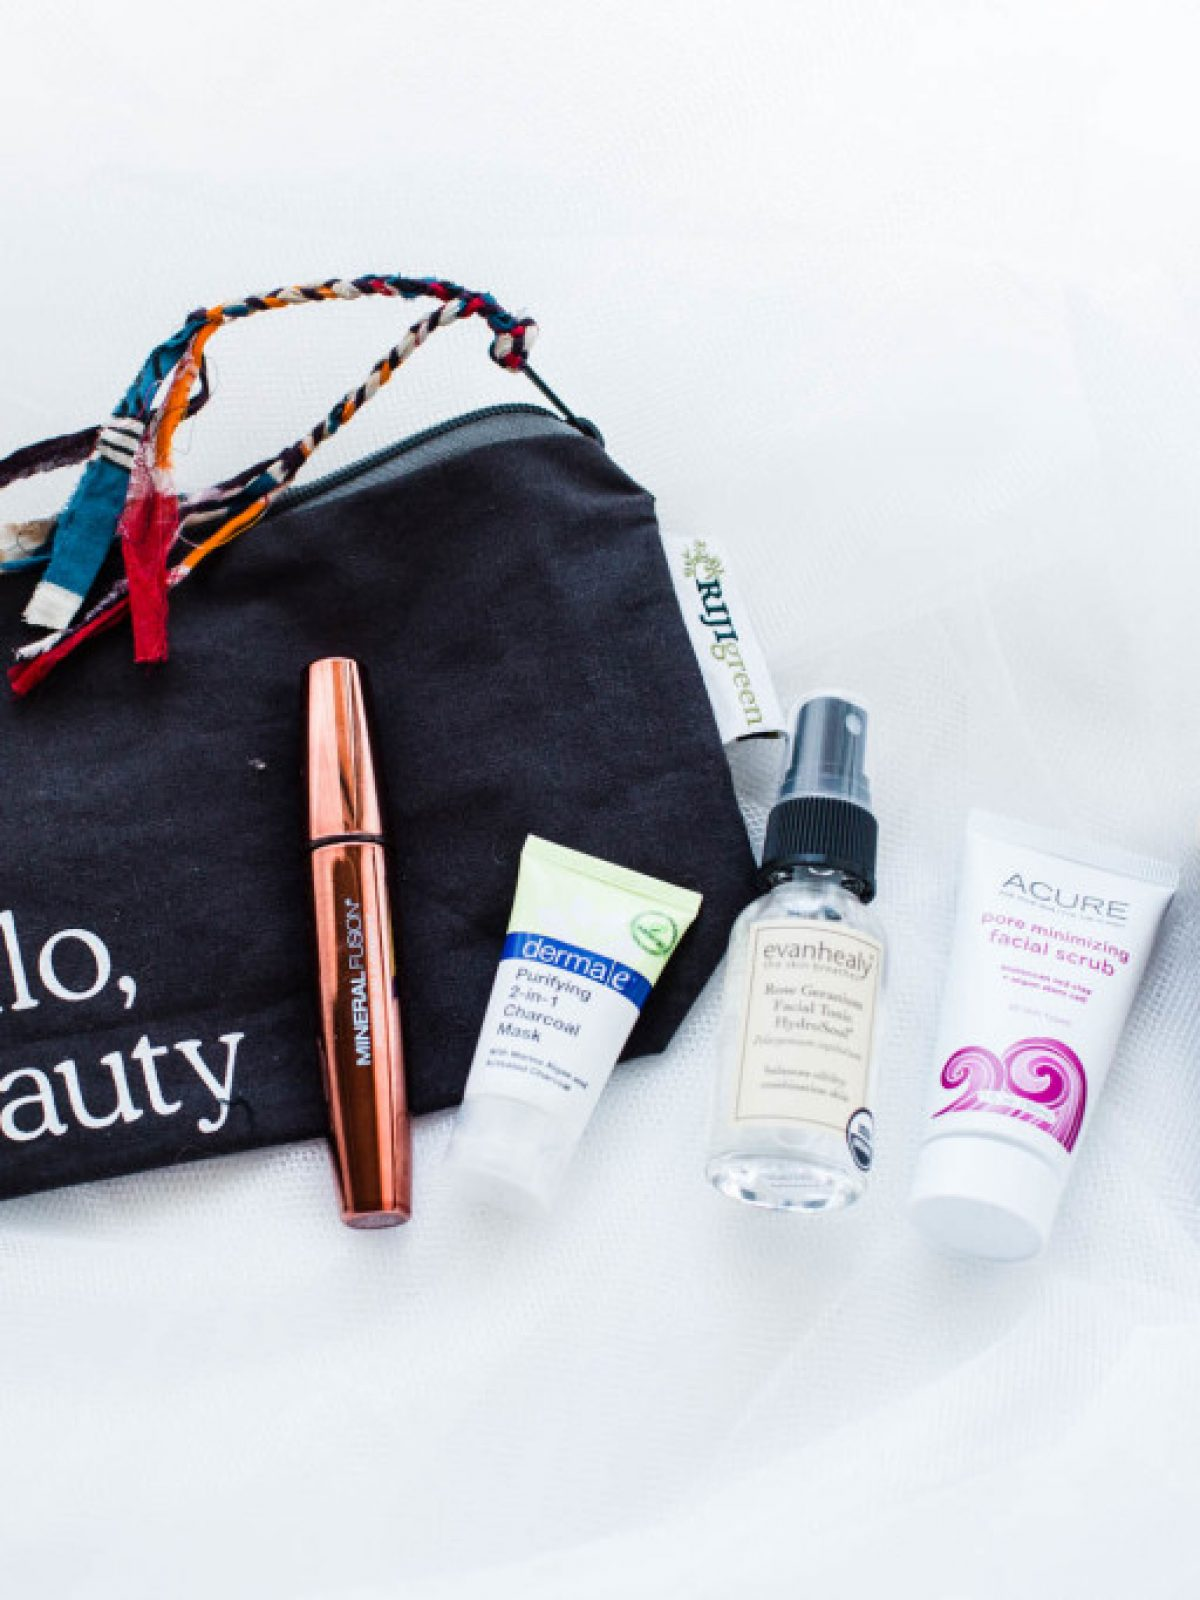 whole foods beauty bag, clean beauty favorites, dermae Purifying 2-in-1 Charcoal Mask, Acure Pore Minimizing Facial Scrub, Burt's Bees Sunset Cruise Lip Stick